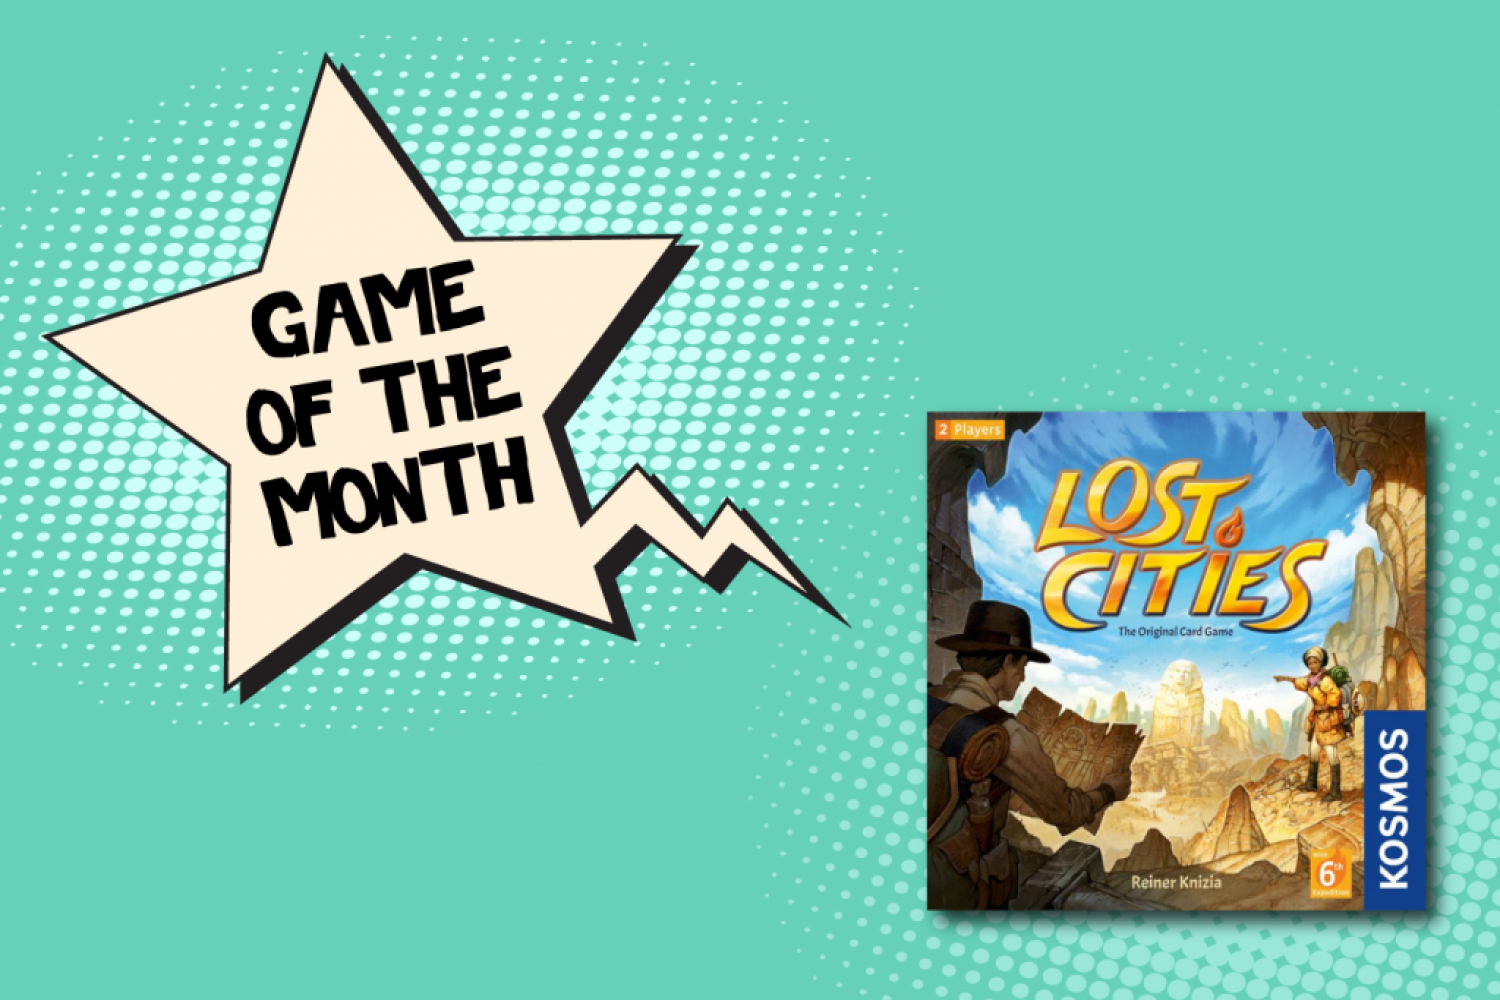 Lost-Cities-Board-Game-Review-Game-fo-the-Month